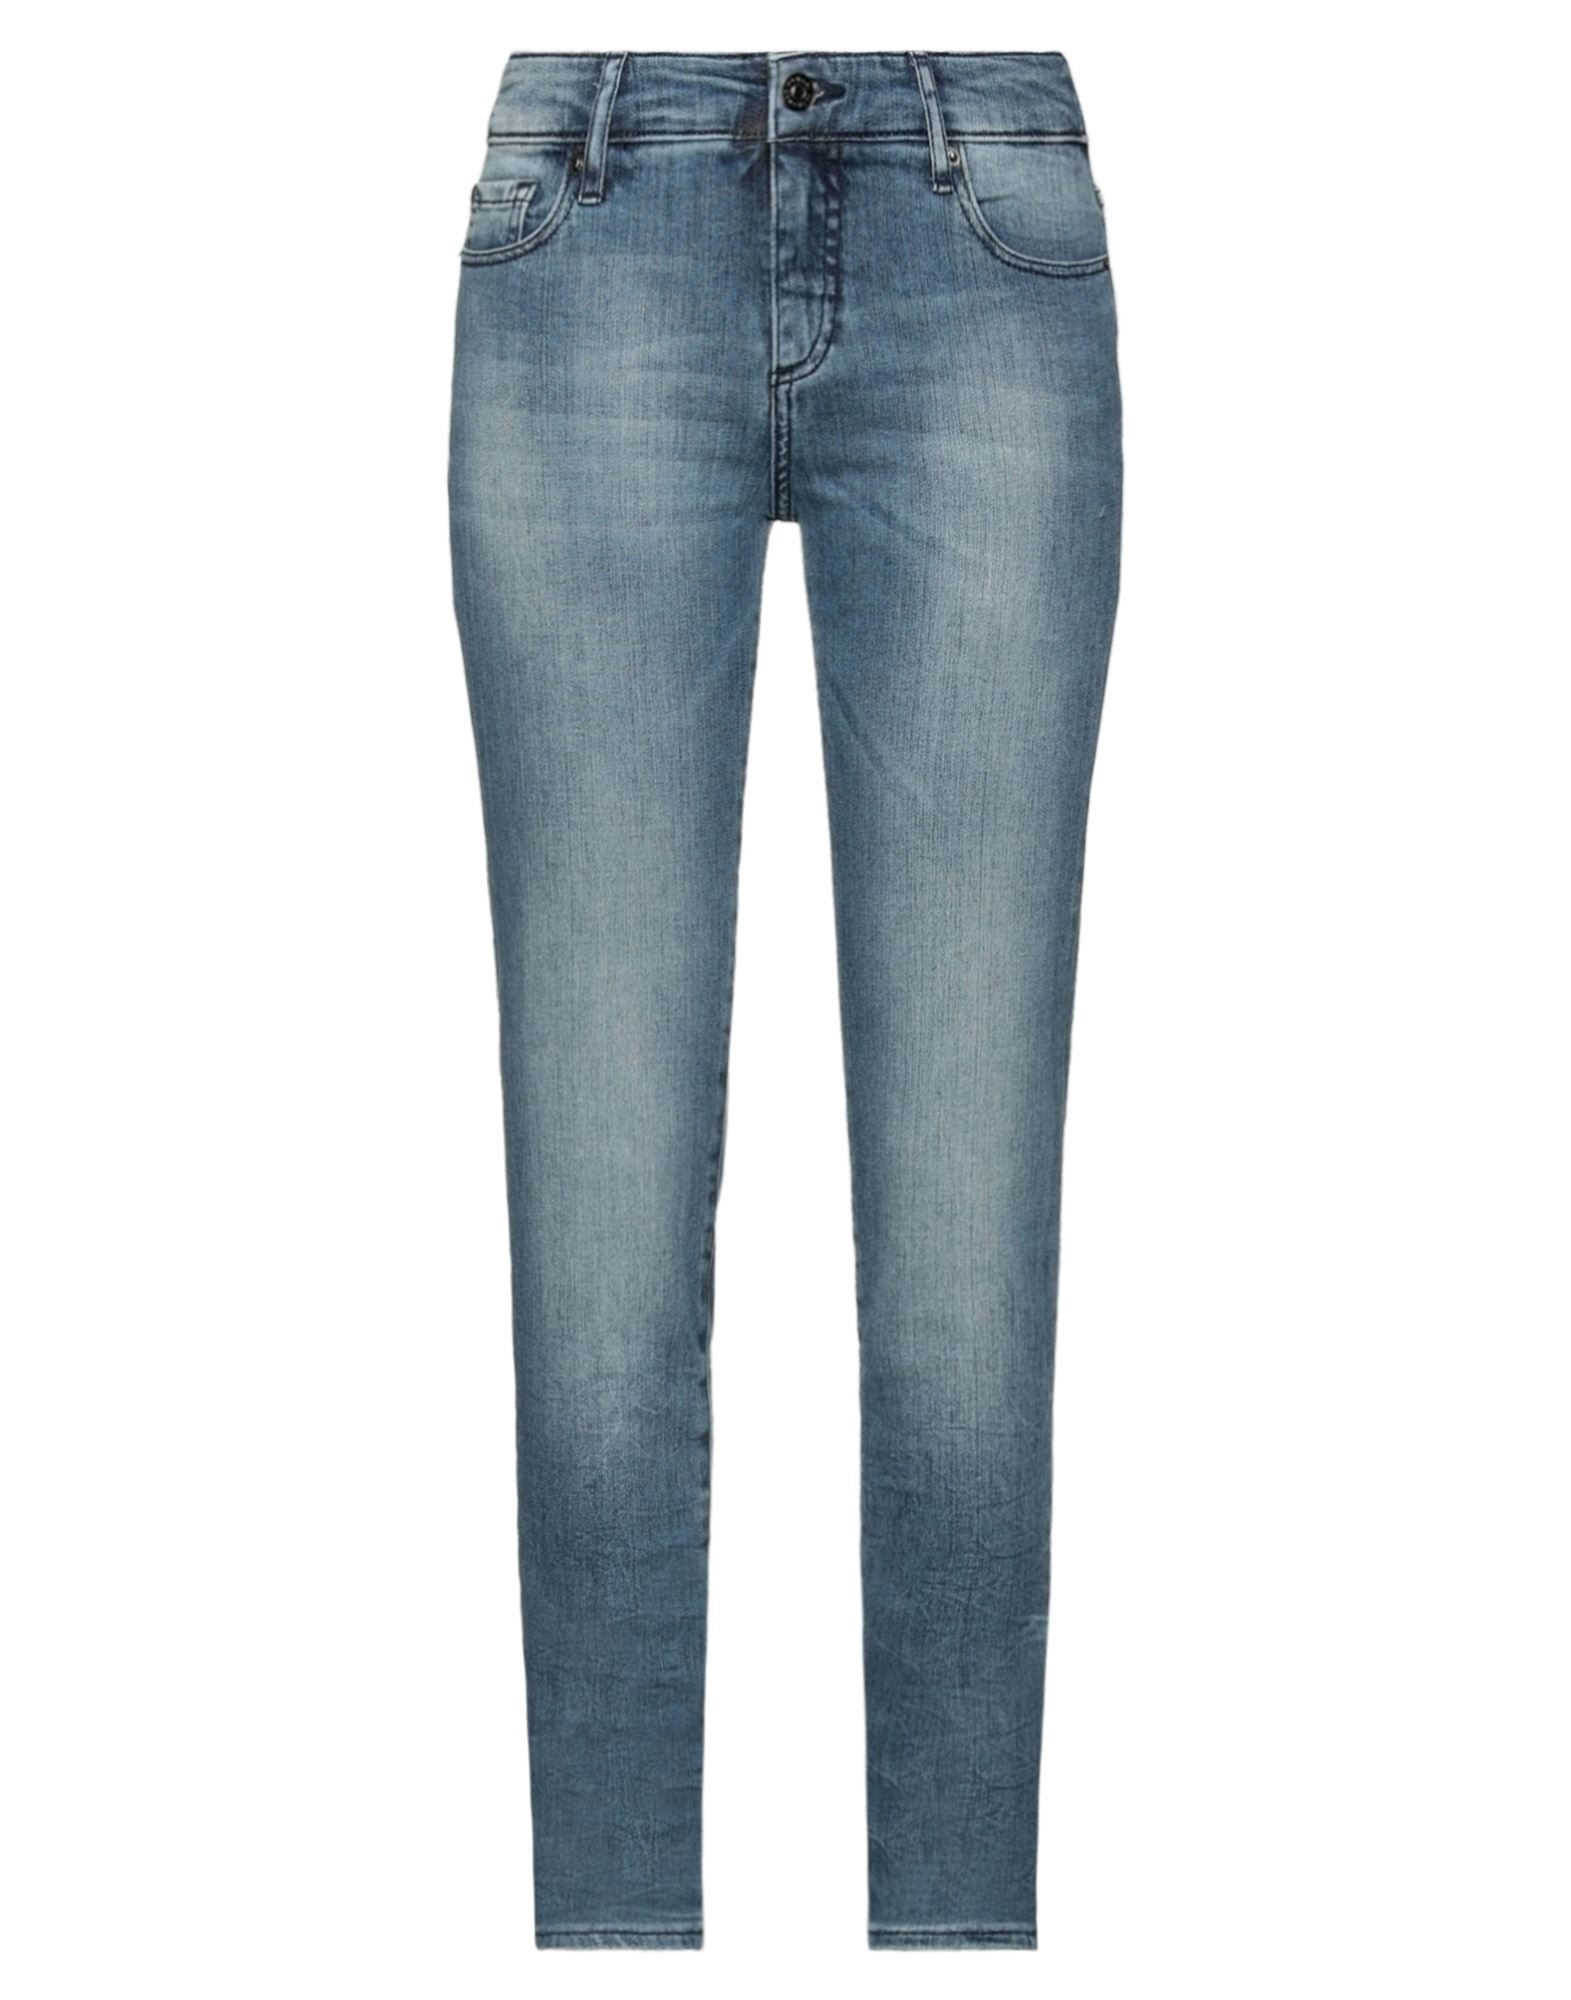 ARMANI EXCHANGE Denim pants - Item 42840334